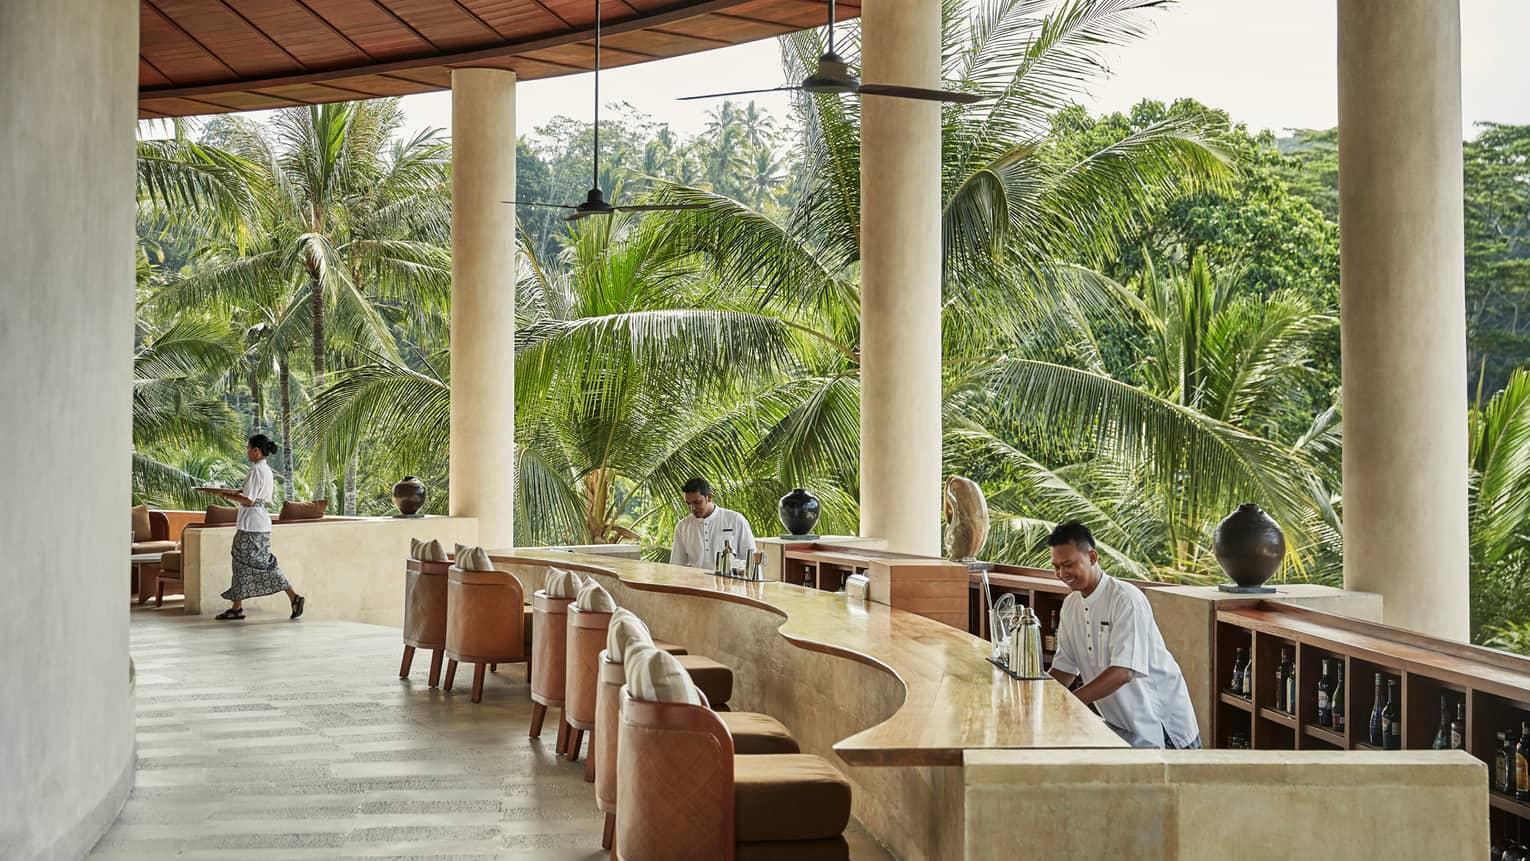 Smiling bartenders behind long wood-and-stone bar under white pillars of resort balcony, palm trees in background